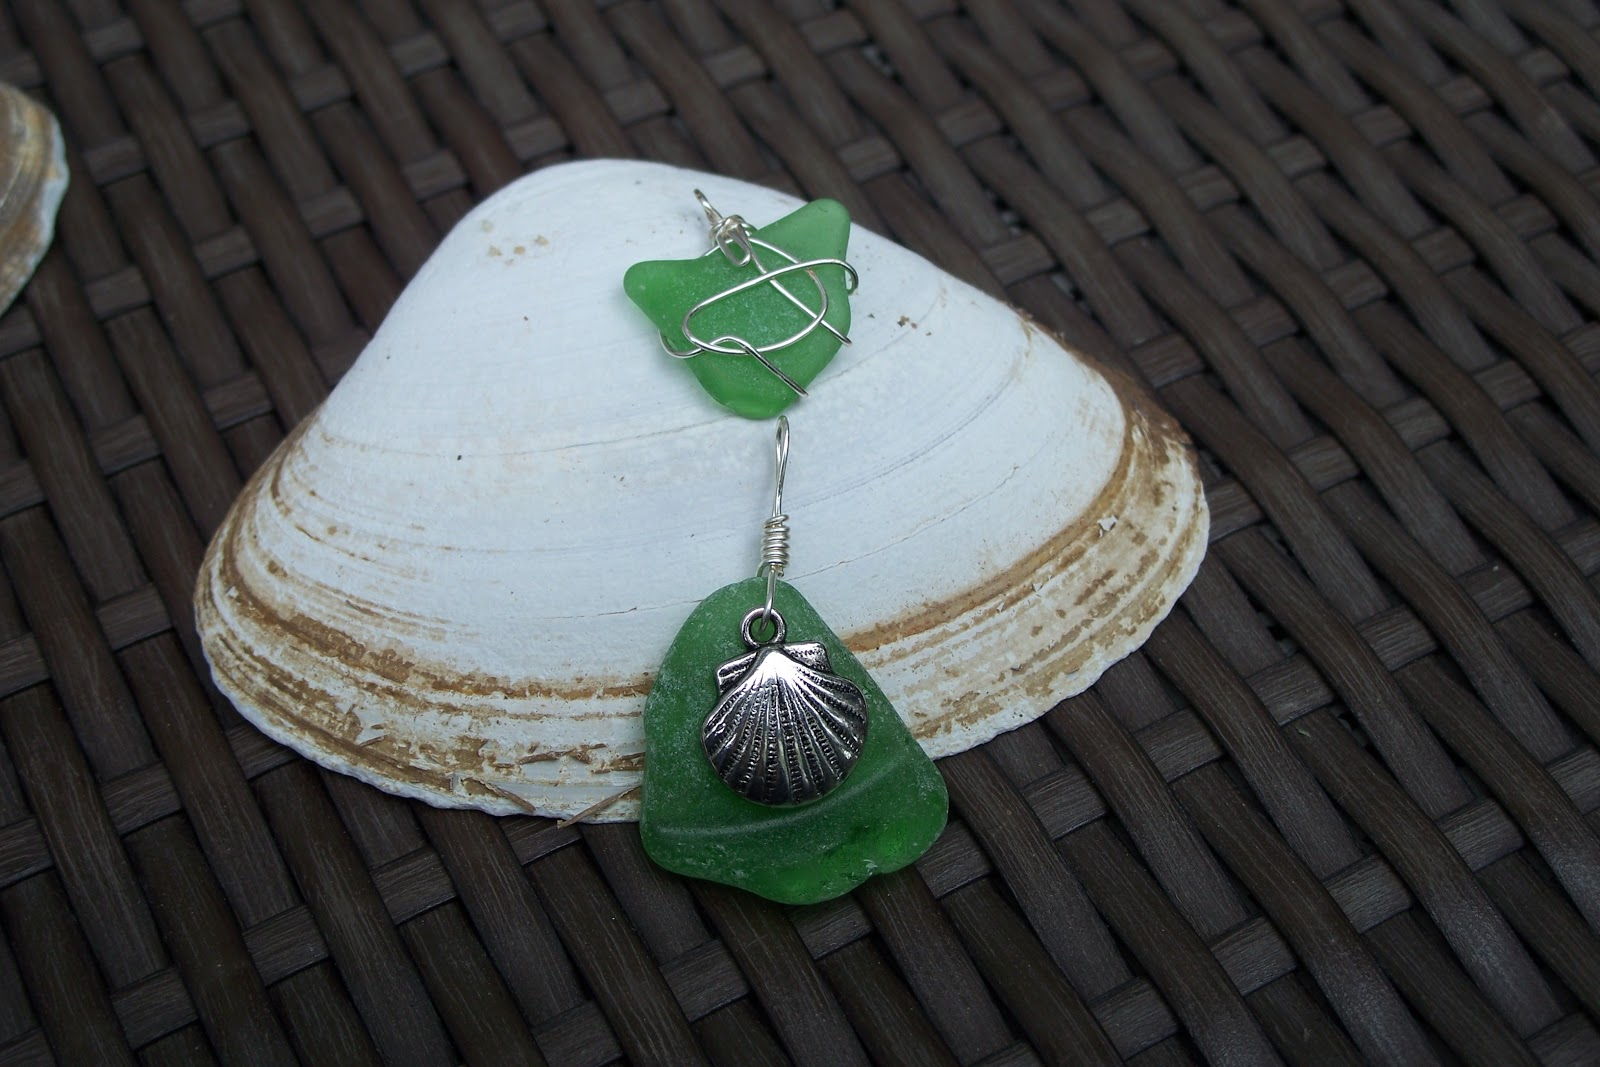 News from jajejems jajejems and seaglass jewellery after taking a class in wrapping seaglass jessica decided to expand her repertoire by learning to drill small holes in the seaglass solutioingenieria Images